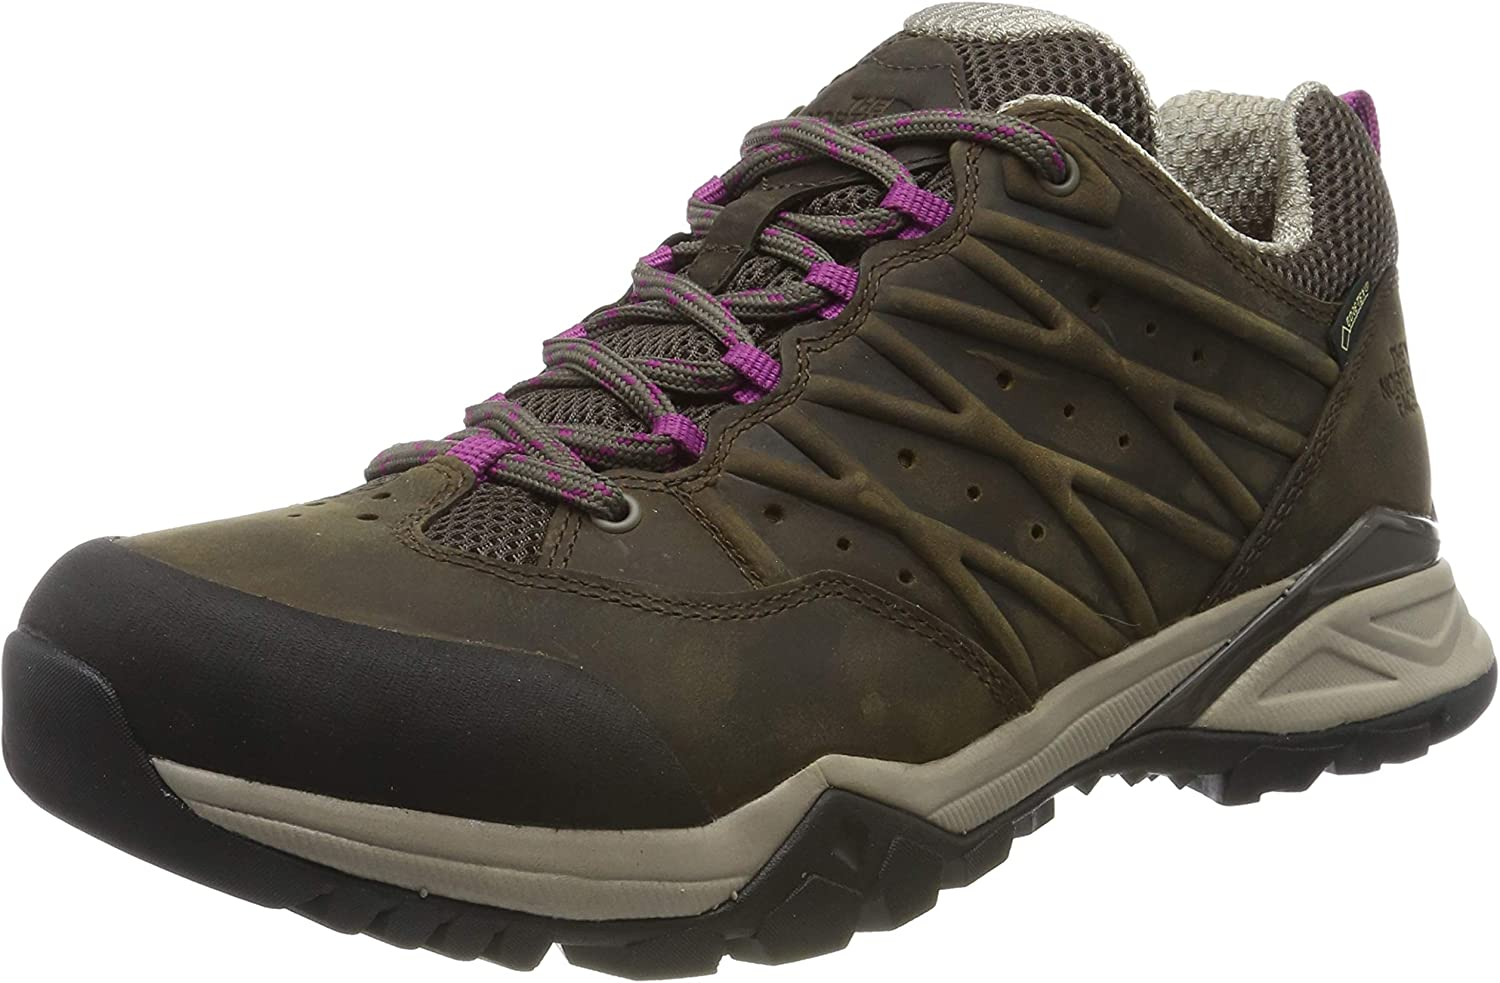 The North Face Women s Low Rise Hiking Shoes